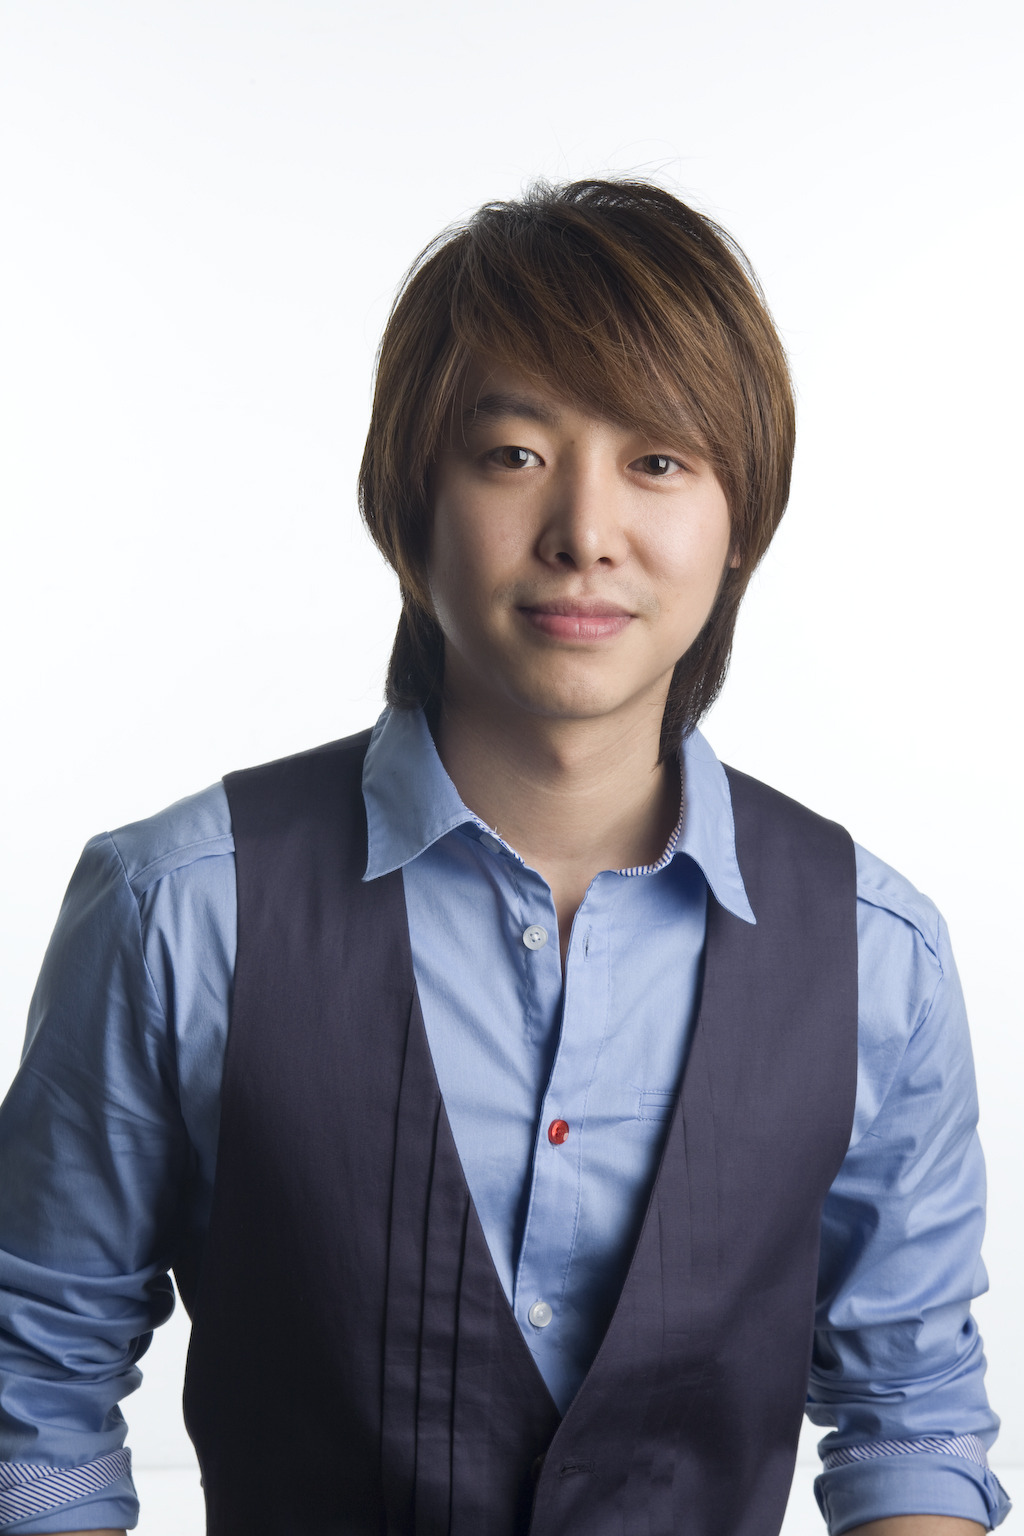 Actor Kim Dong-wook - age: 34